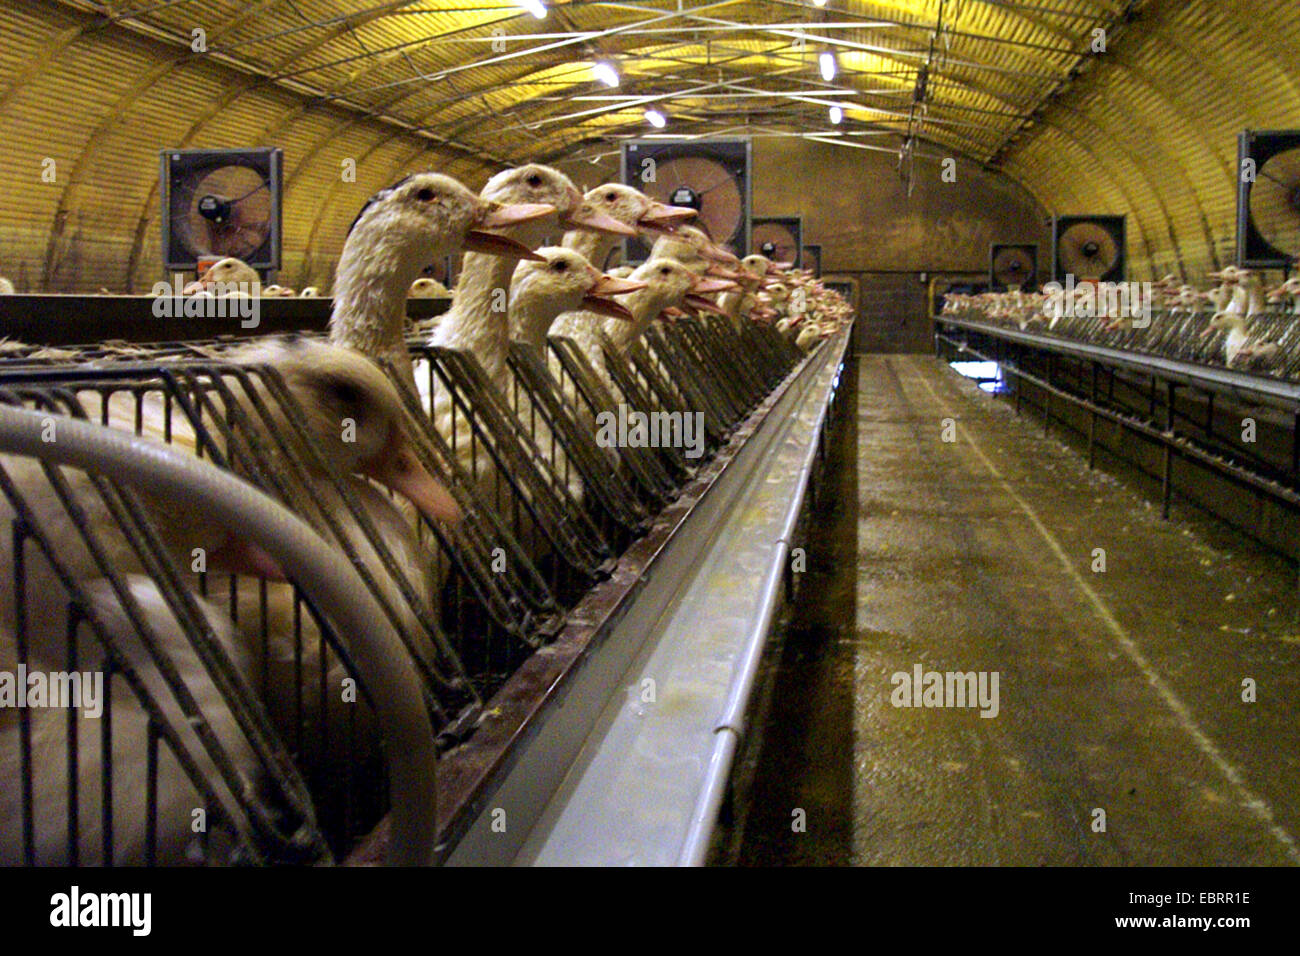 domestic duck (Anas platyrhynchos f. domestica), countless birds in industrial farming and fattening, fixed in tight - Stock Image